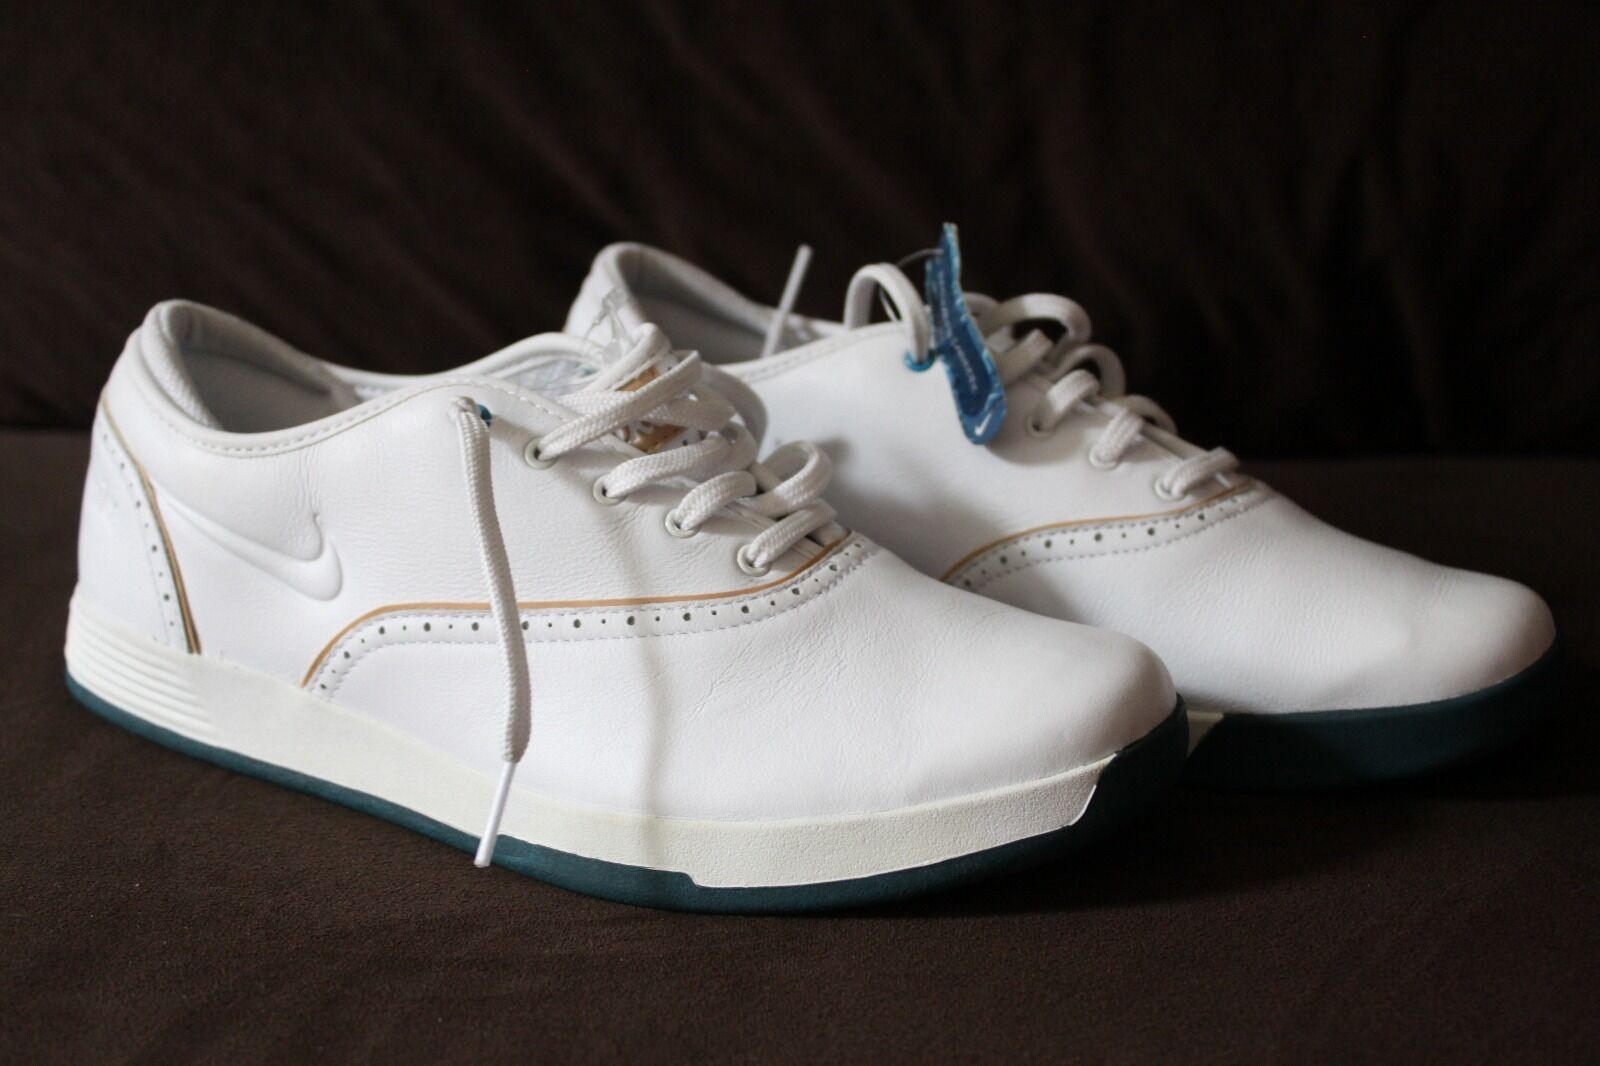 Nike Women's Classic  White Leather Fashion Sneakers NEW!! best-selling model of the brand